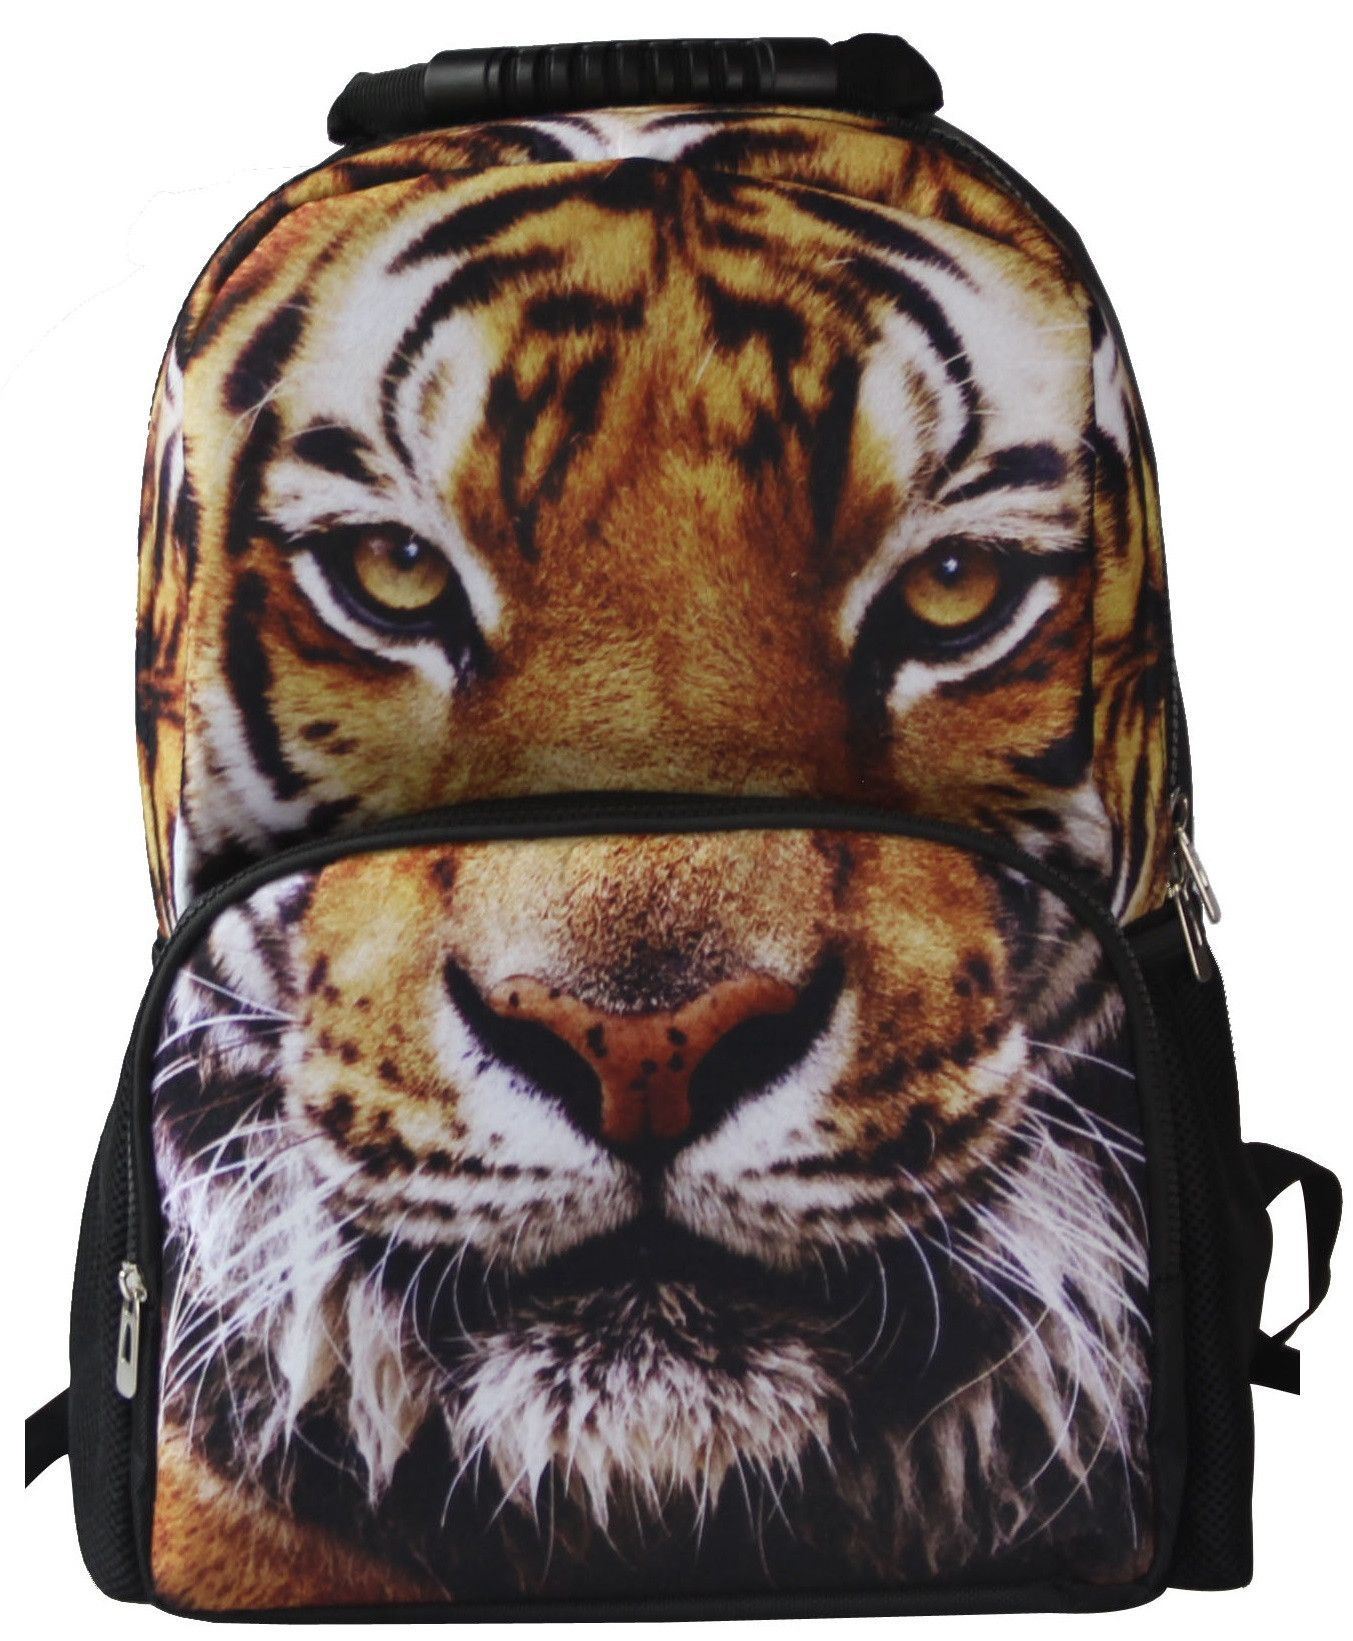 animal face 3d tiger 2 paint backpack | products | pinterest